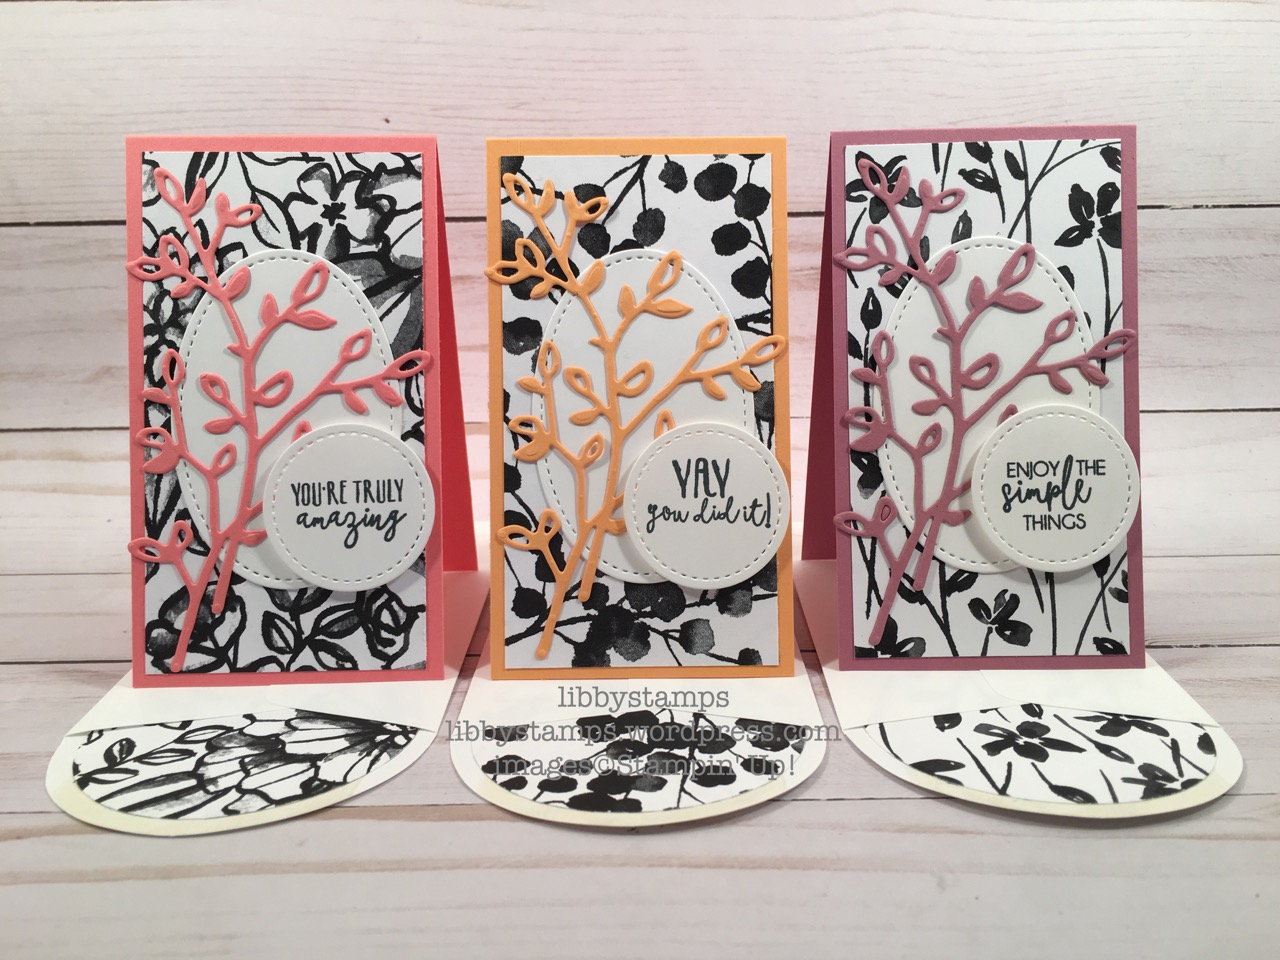 libbystamps, stampin up, Yay You, Petals & More Thinlits, Stitched Shapes Framelits, 2 1/2 Circle, Petal Passion DSP, BFBH, blog hop